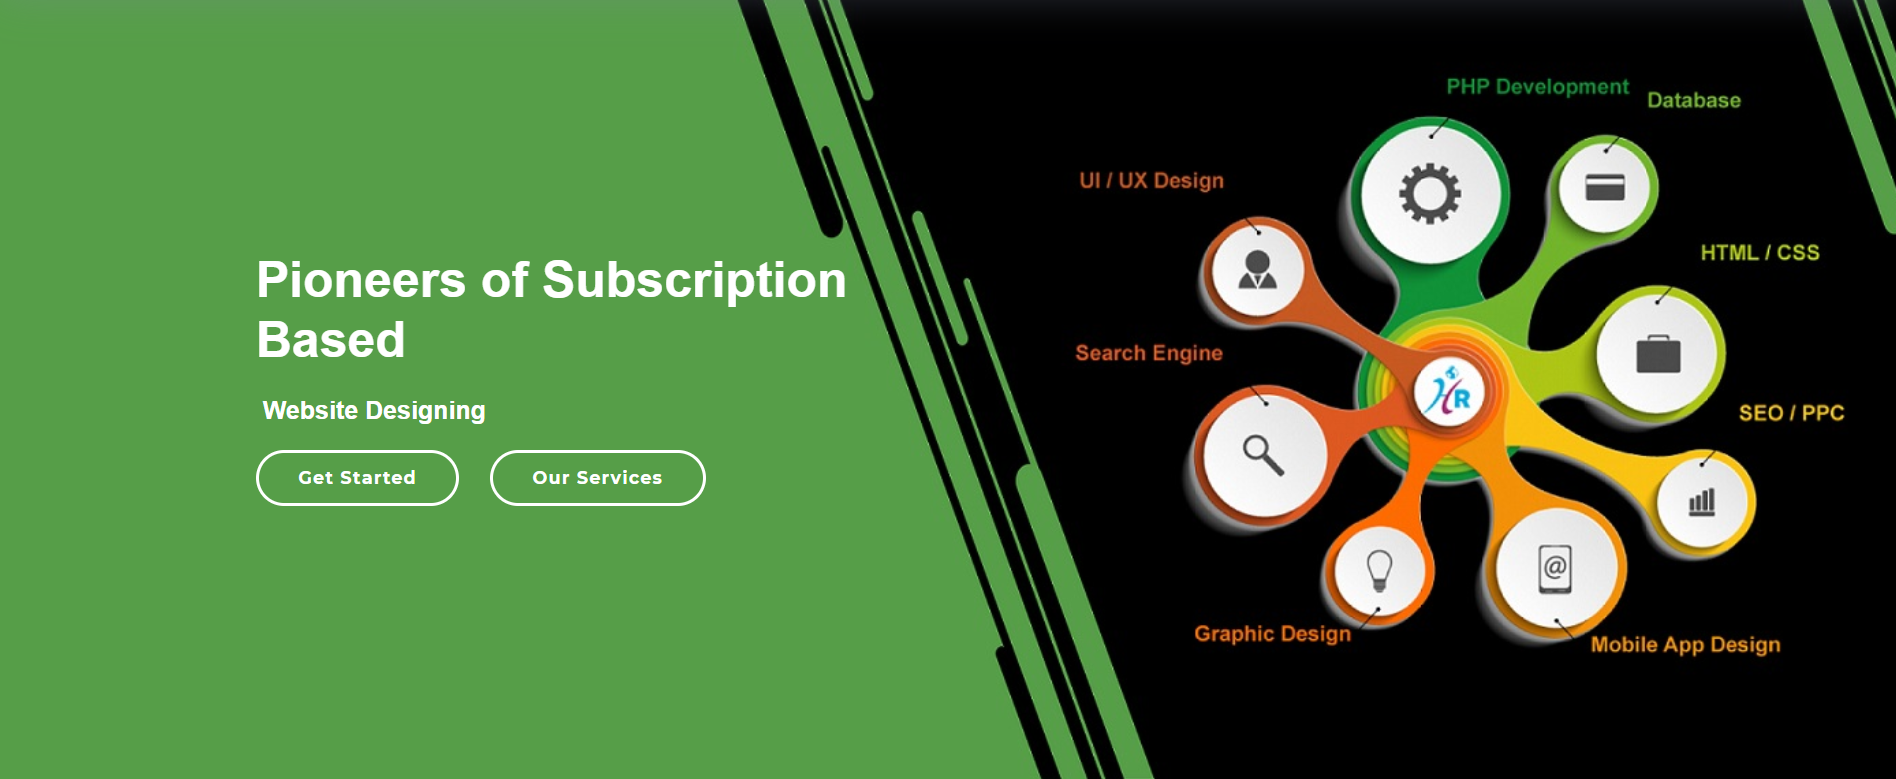 pioneers of subscription based website designing and website Development service in USA, Pakistan and Australia